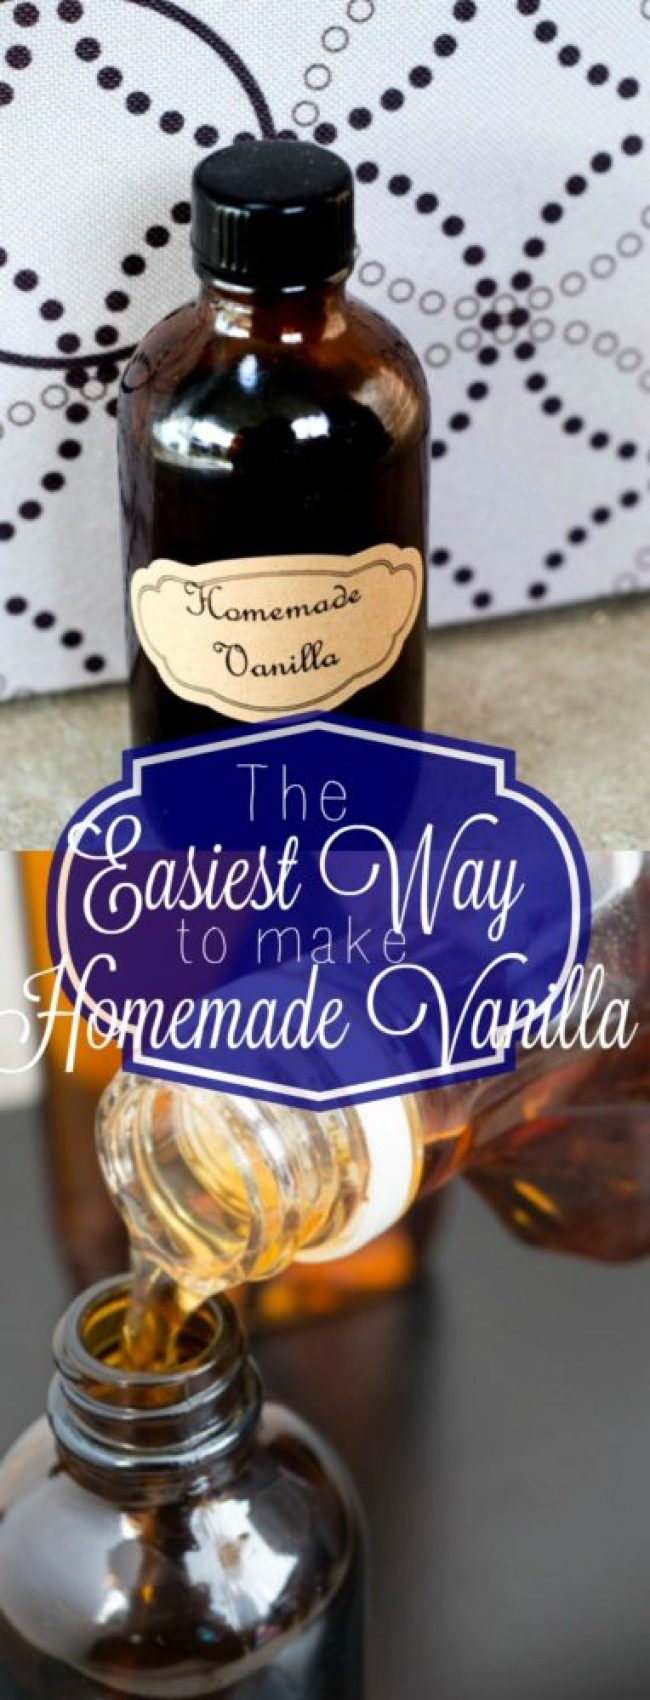 Once you make homemade vanilla, you can't go back. Here is the simplest way to make homemade vanilla!